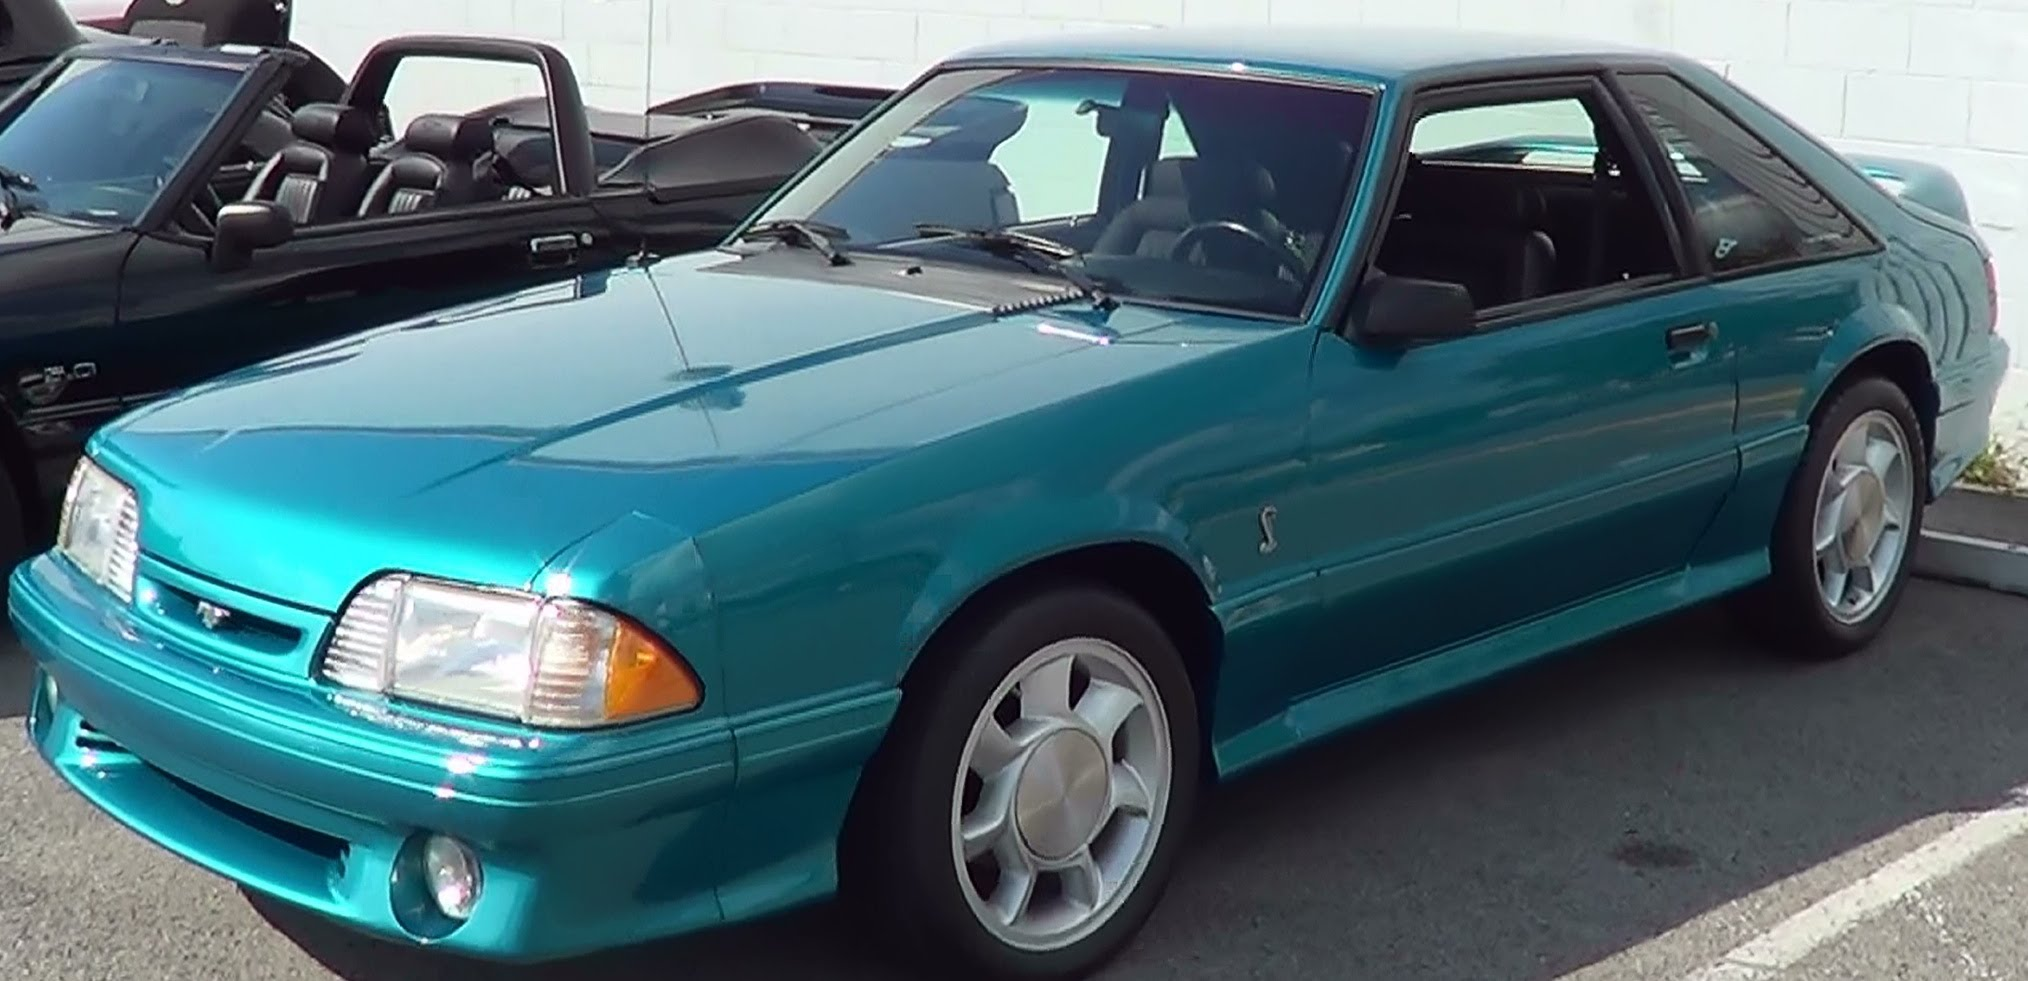 1993 mustang cobra scottiedtv coolest cars on the web